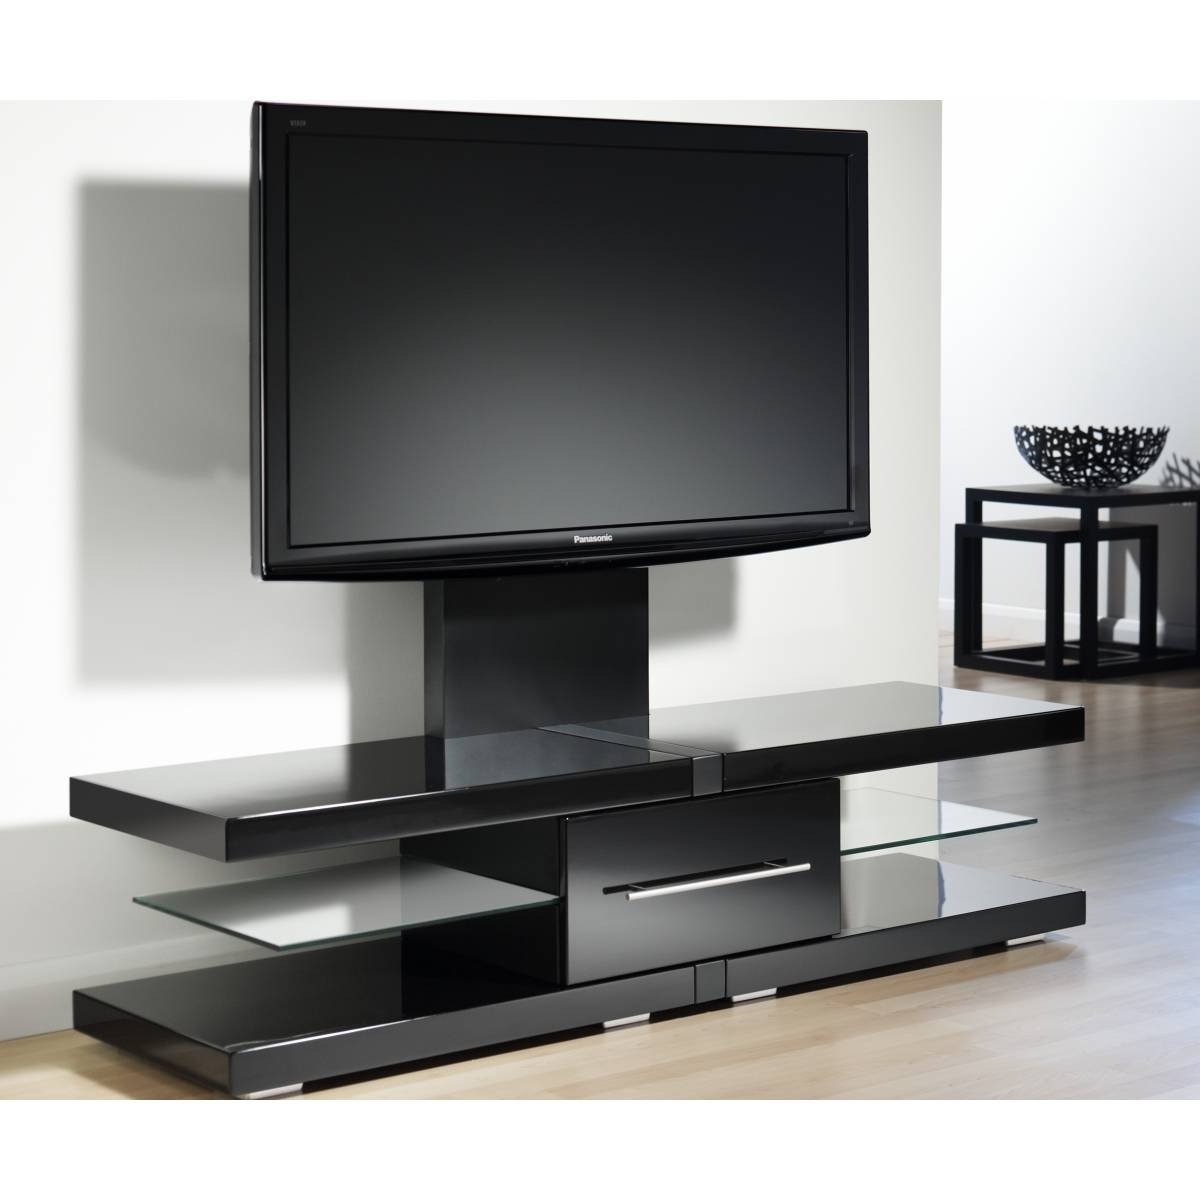 Modern Glossy Black Flat Screen Tv Stand With Mount And Glass Within Long Black Tv Stands (View 10 of 15)